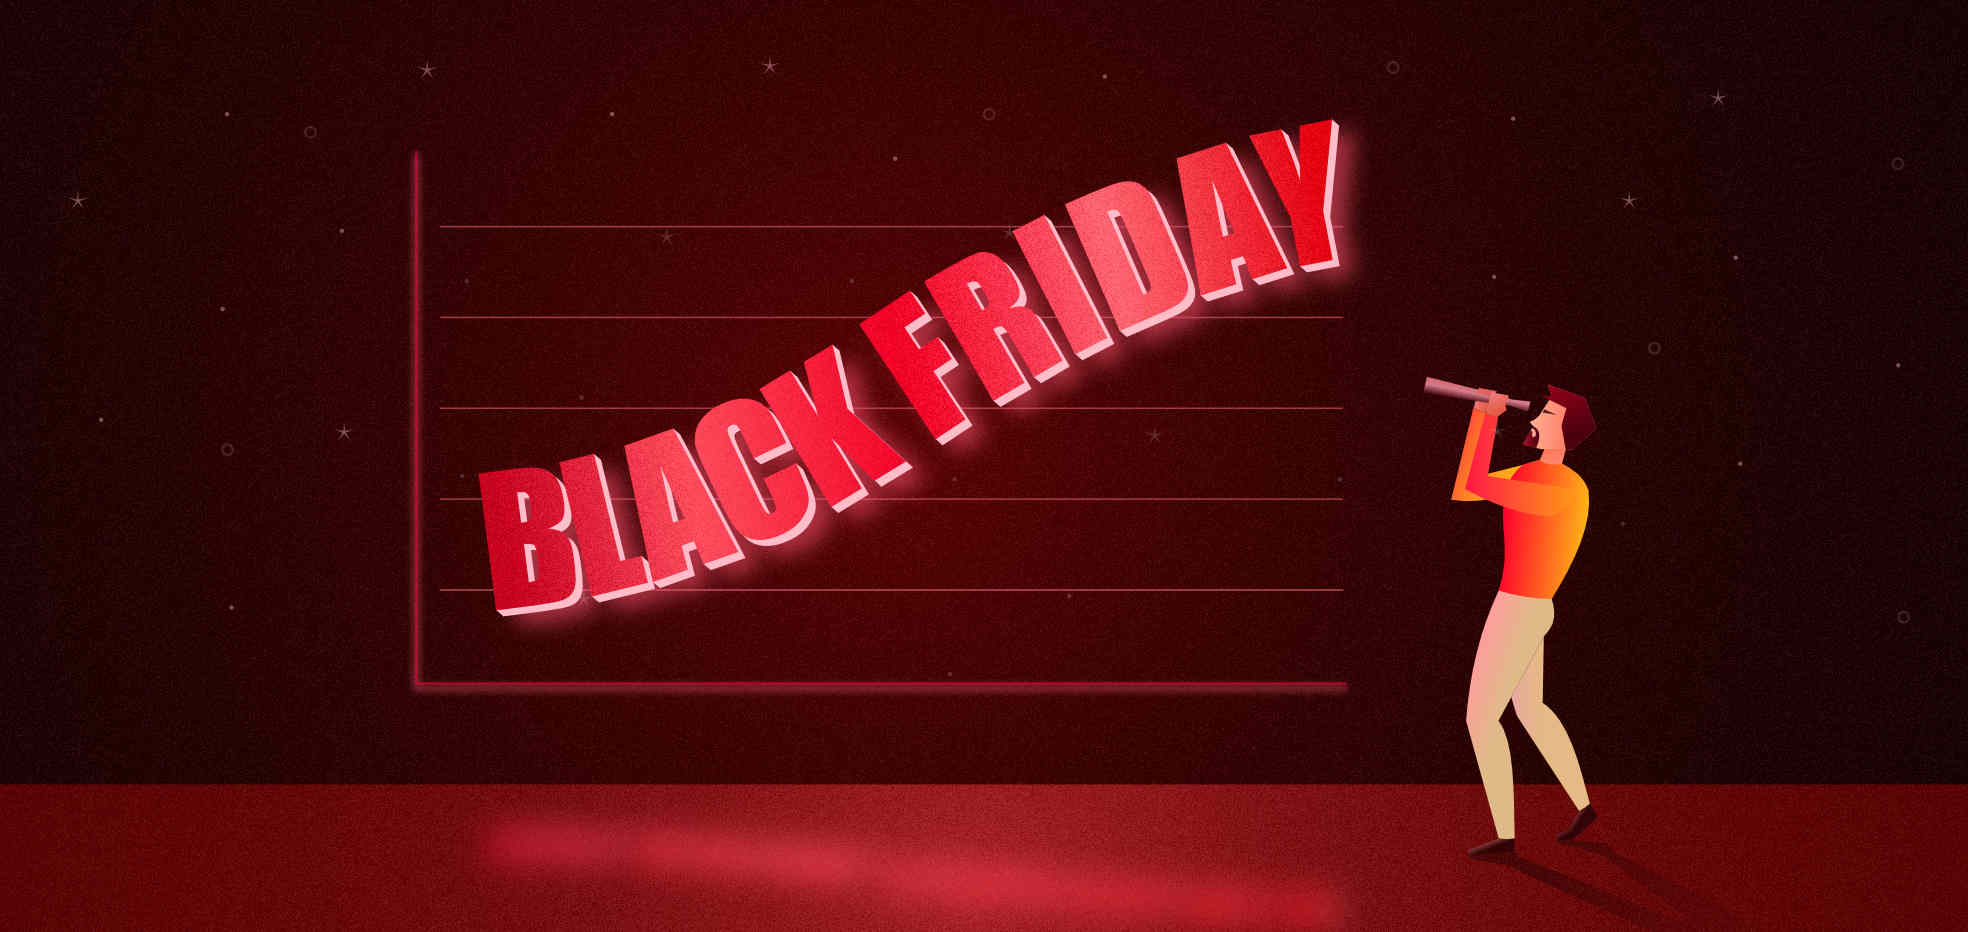 Black Friday Sales - Revealing data insights